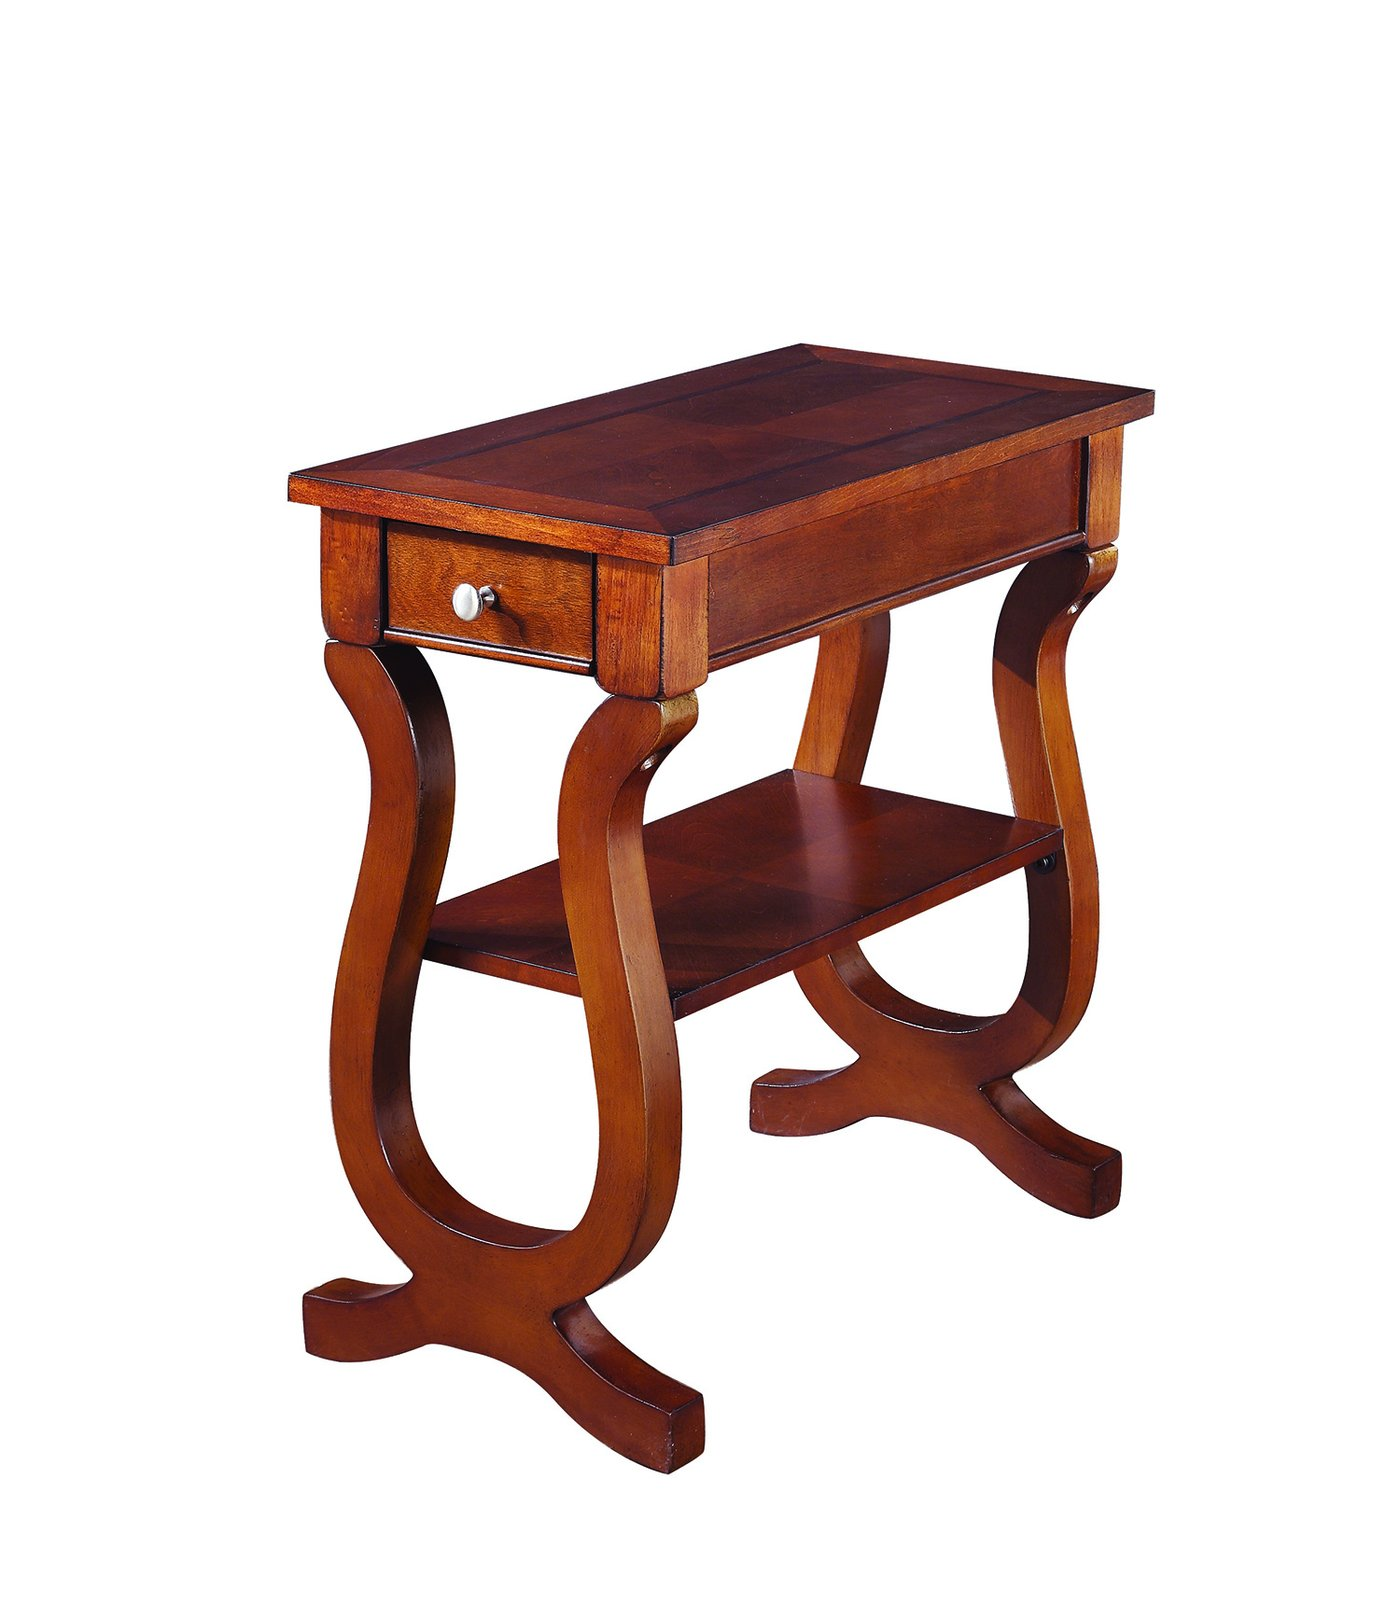 coaster accent tables cherry rectangular chairside table end finish lasvegasfurniture universal furniture console standard dining room size modern contemporary square coffee